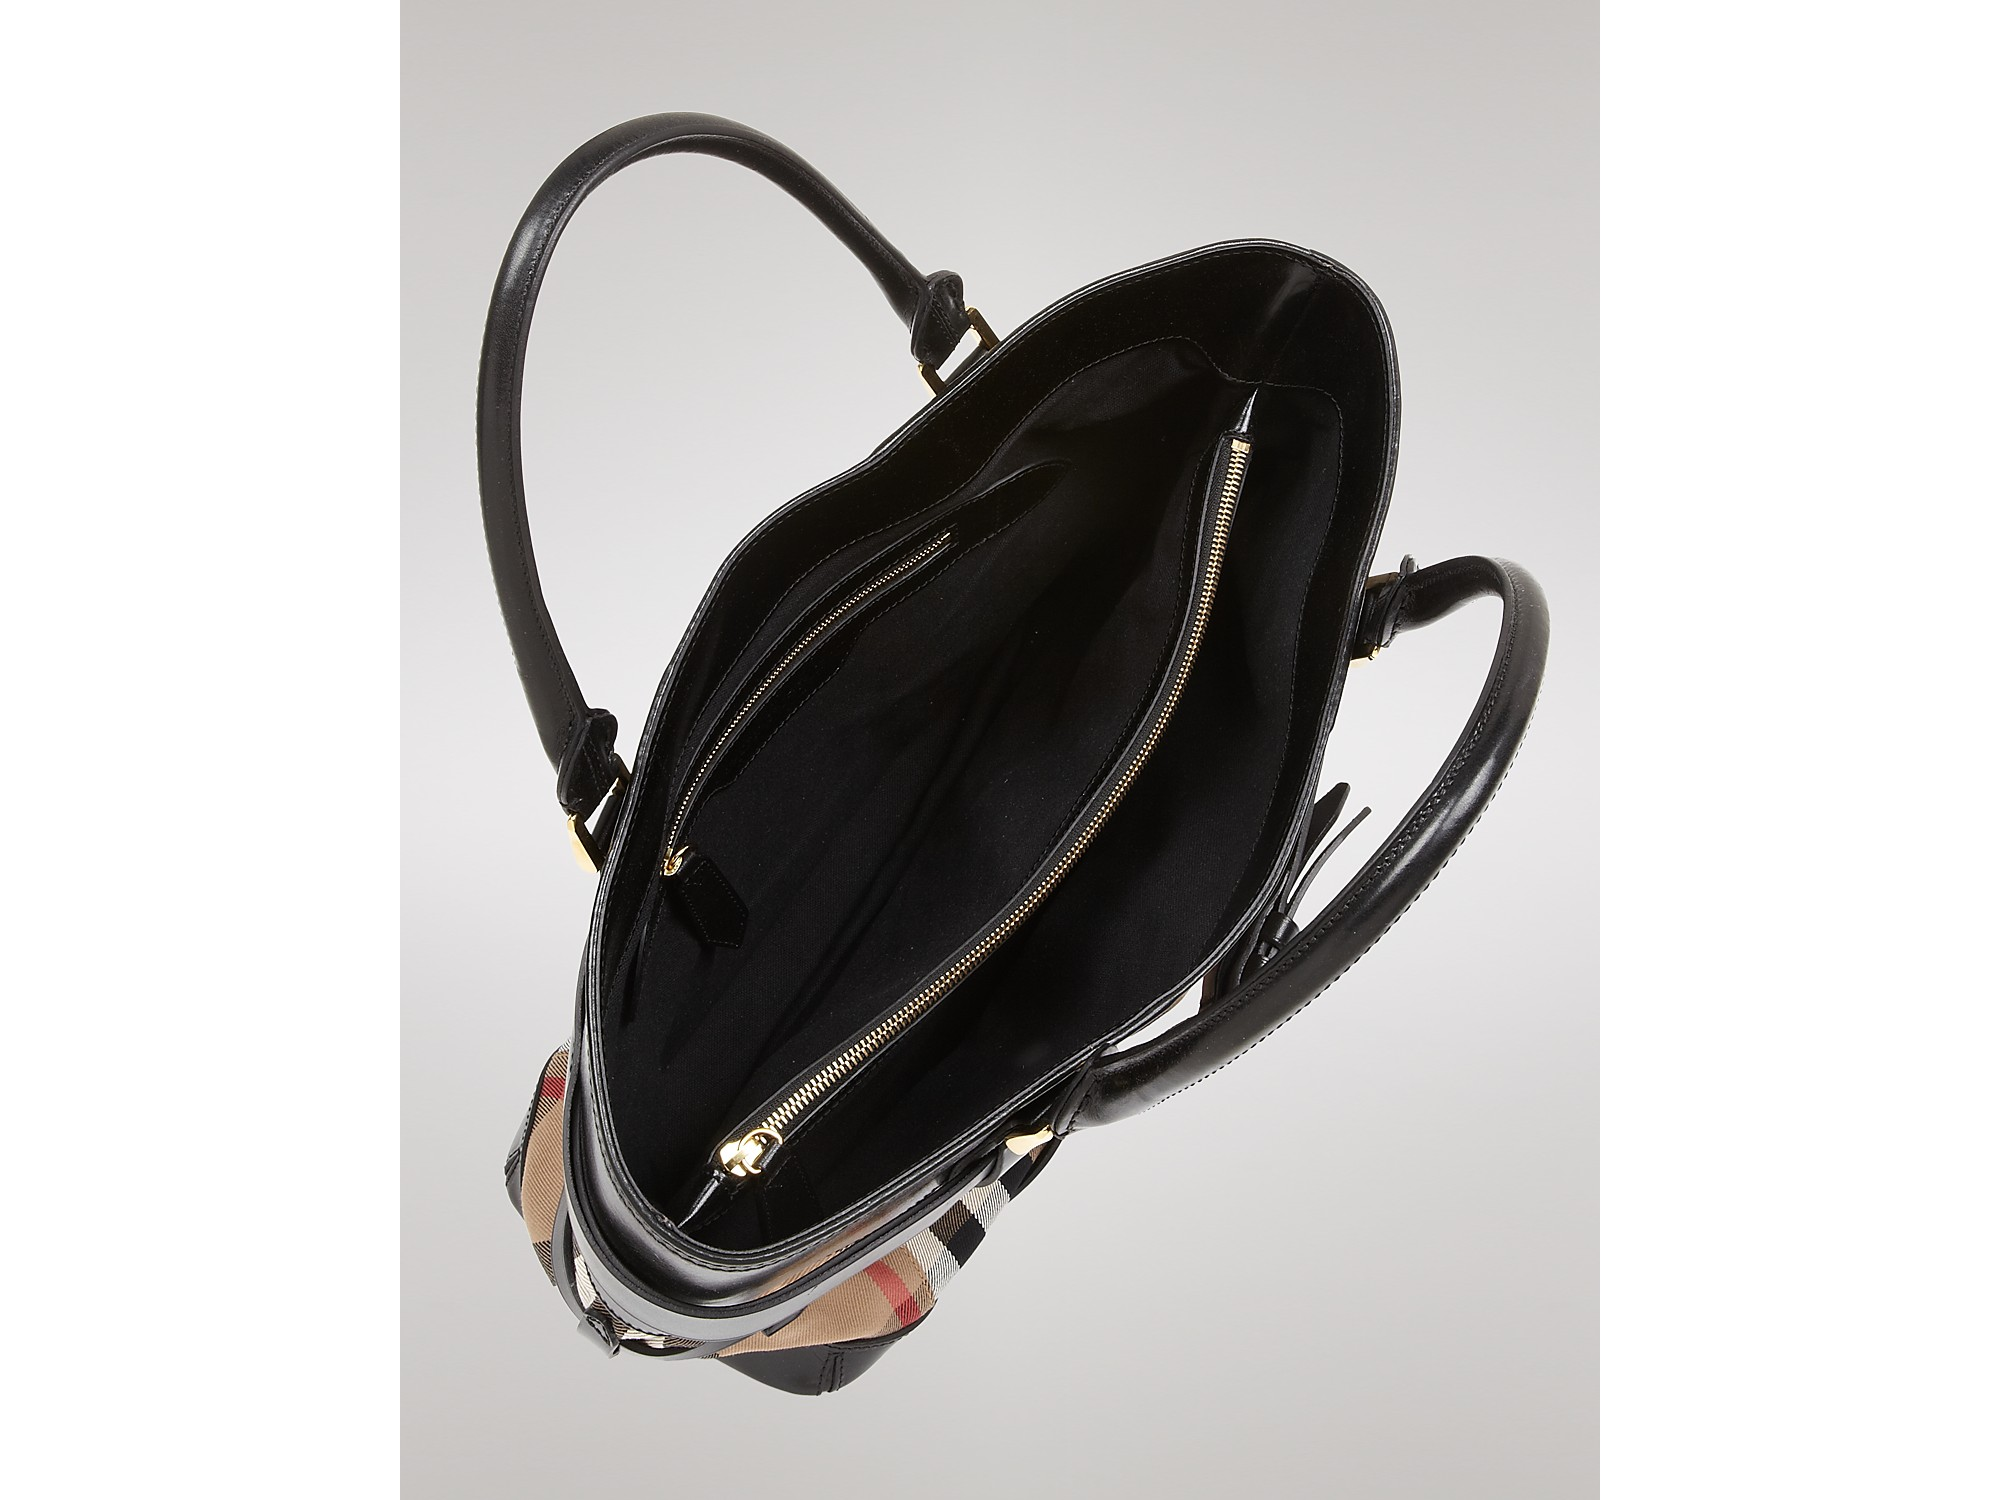 Lyst - Burberry Tote Bridle House Check Medium Lynher in Black 236437ea20